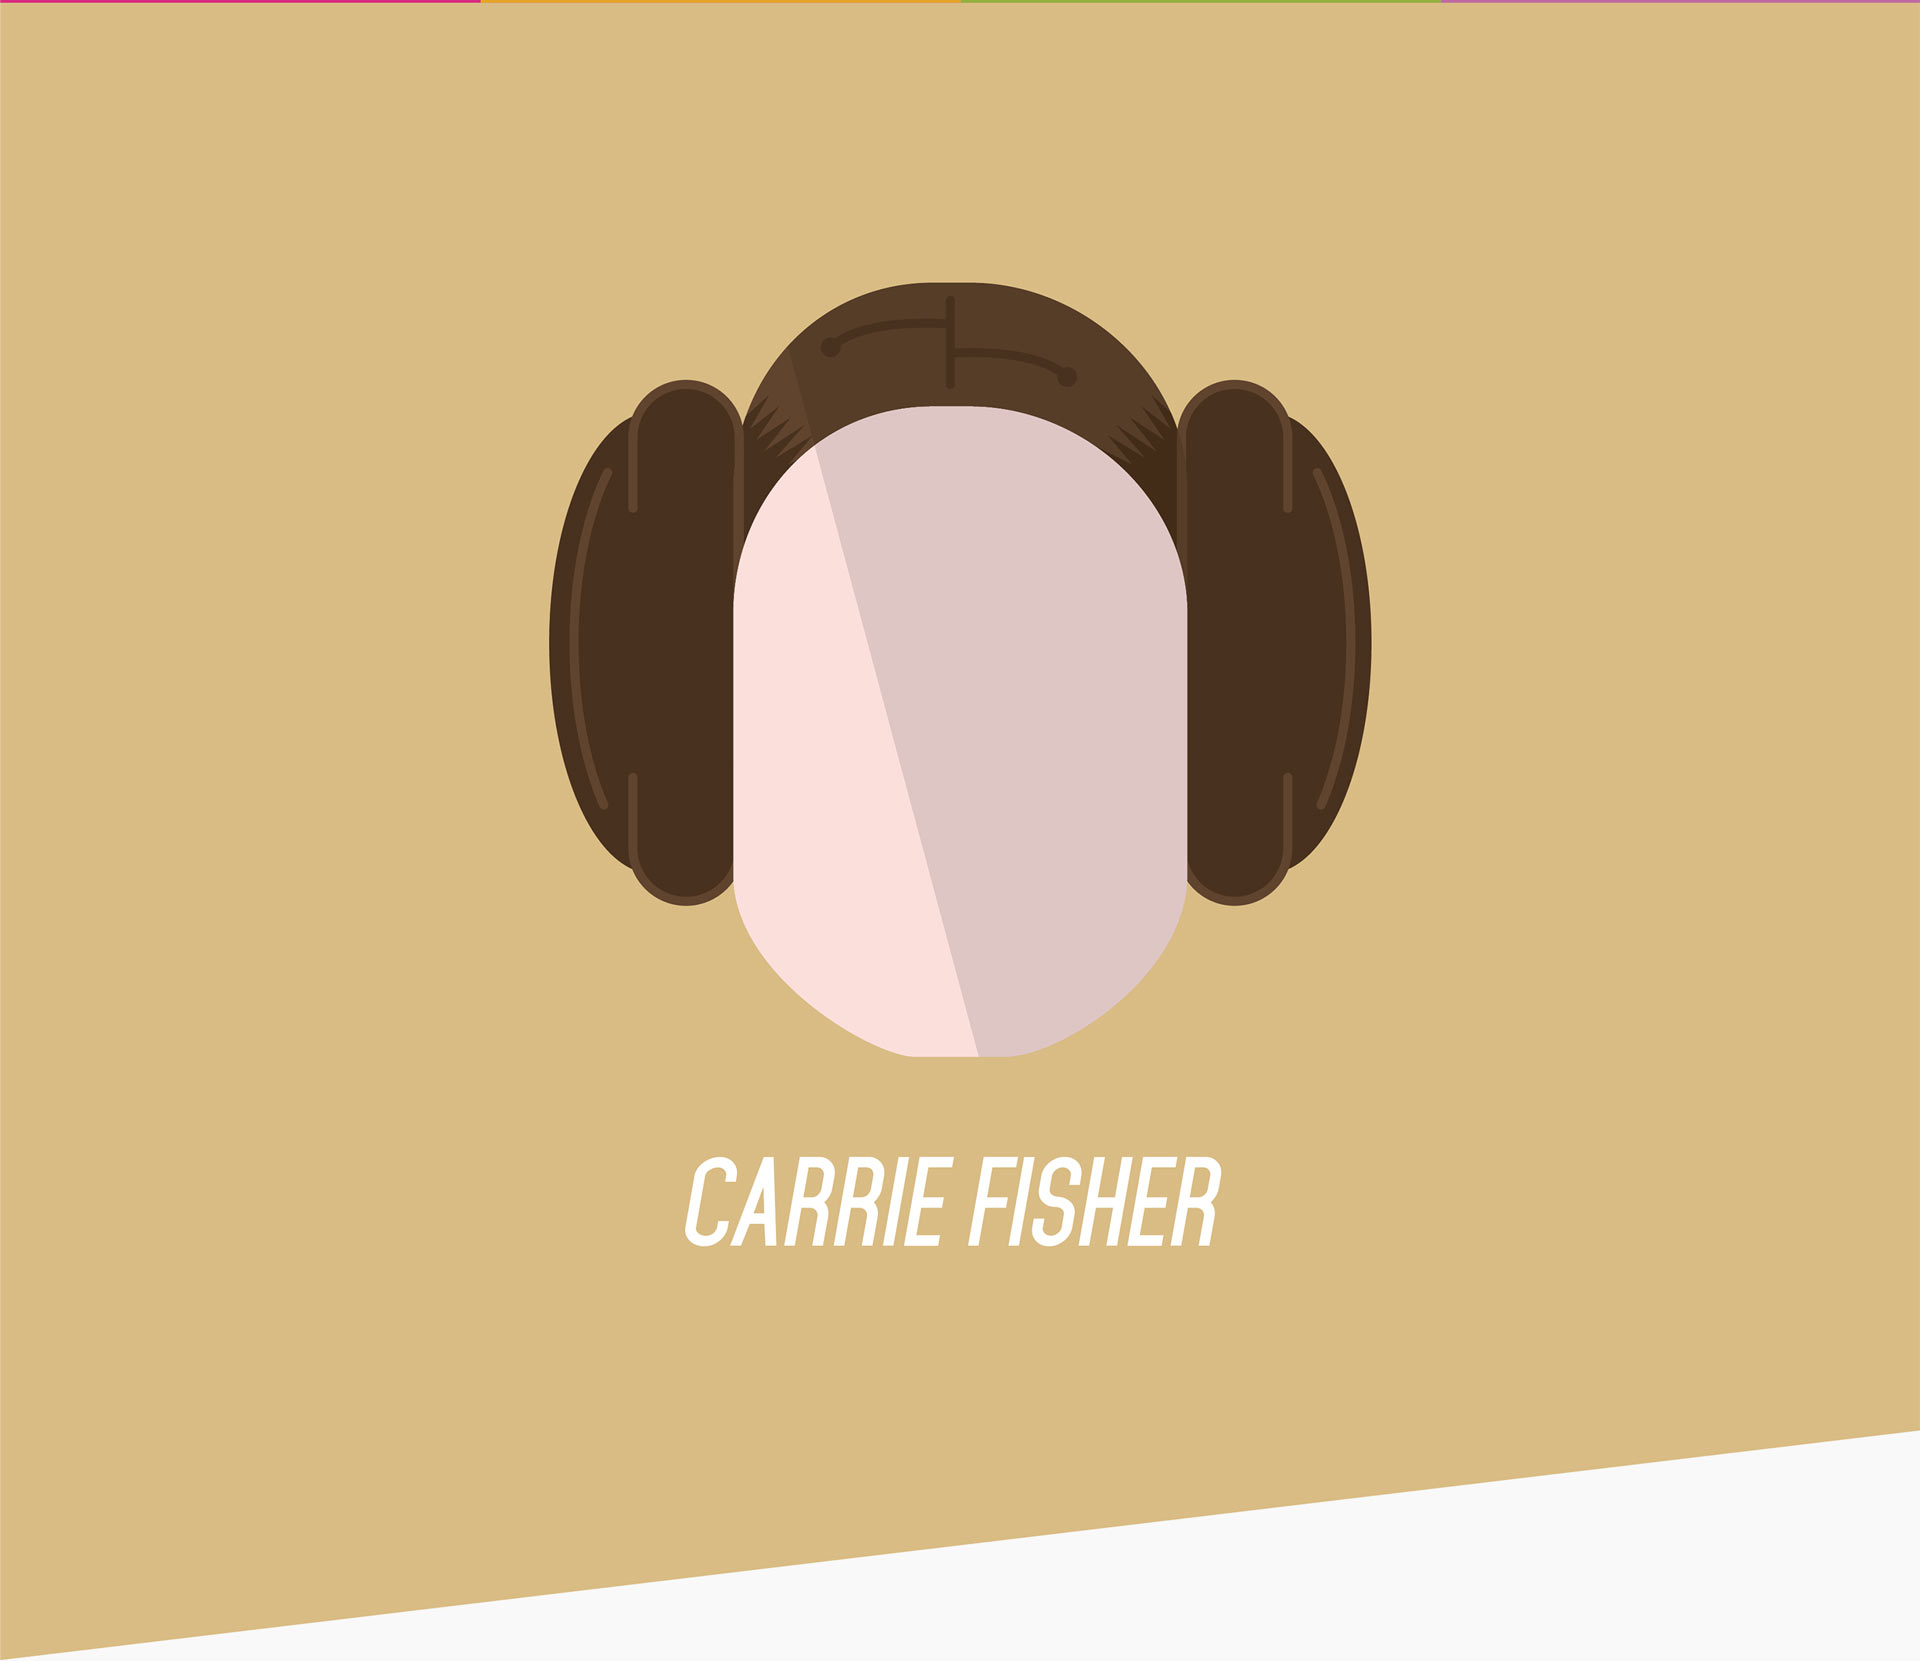 Carrie Fisher illustration.